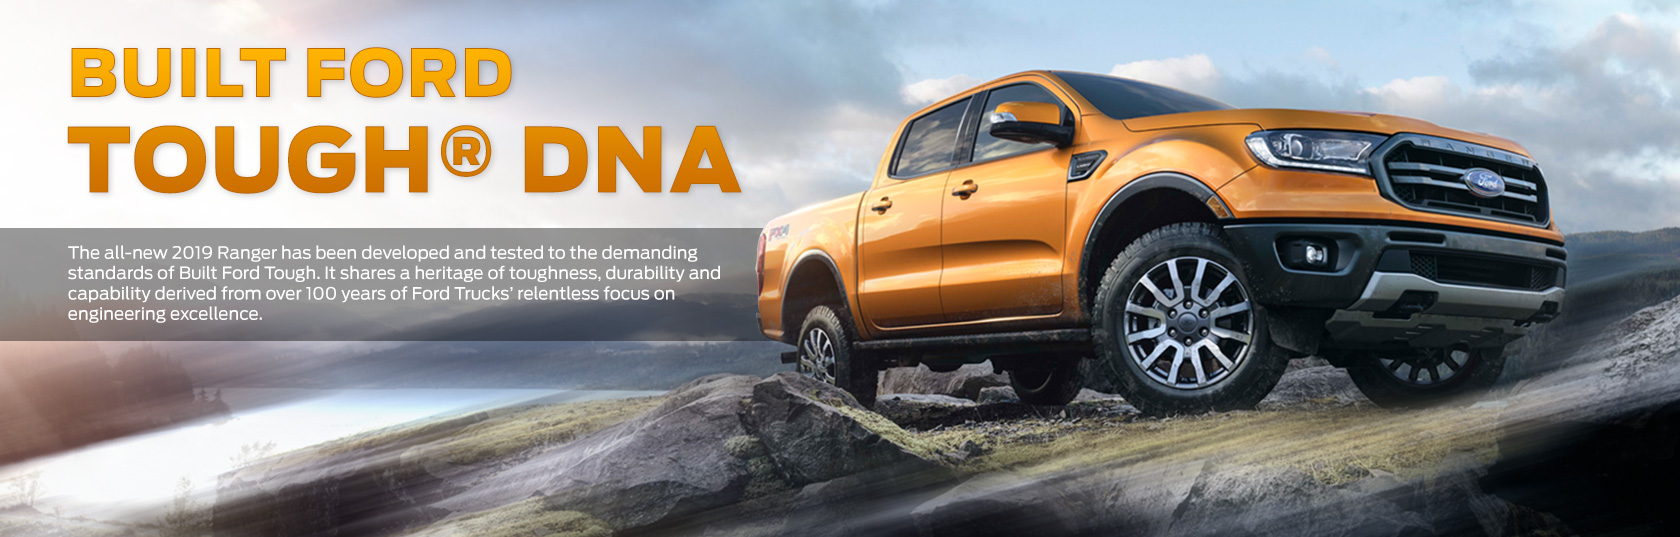 2019 Ford Ranger Orange Body